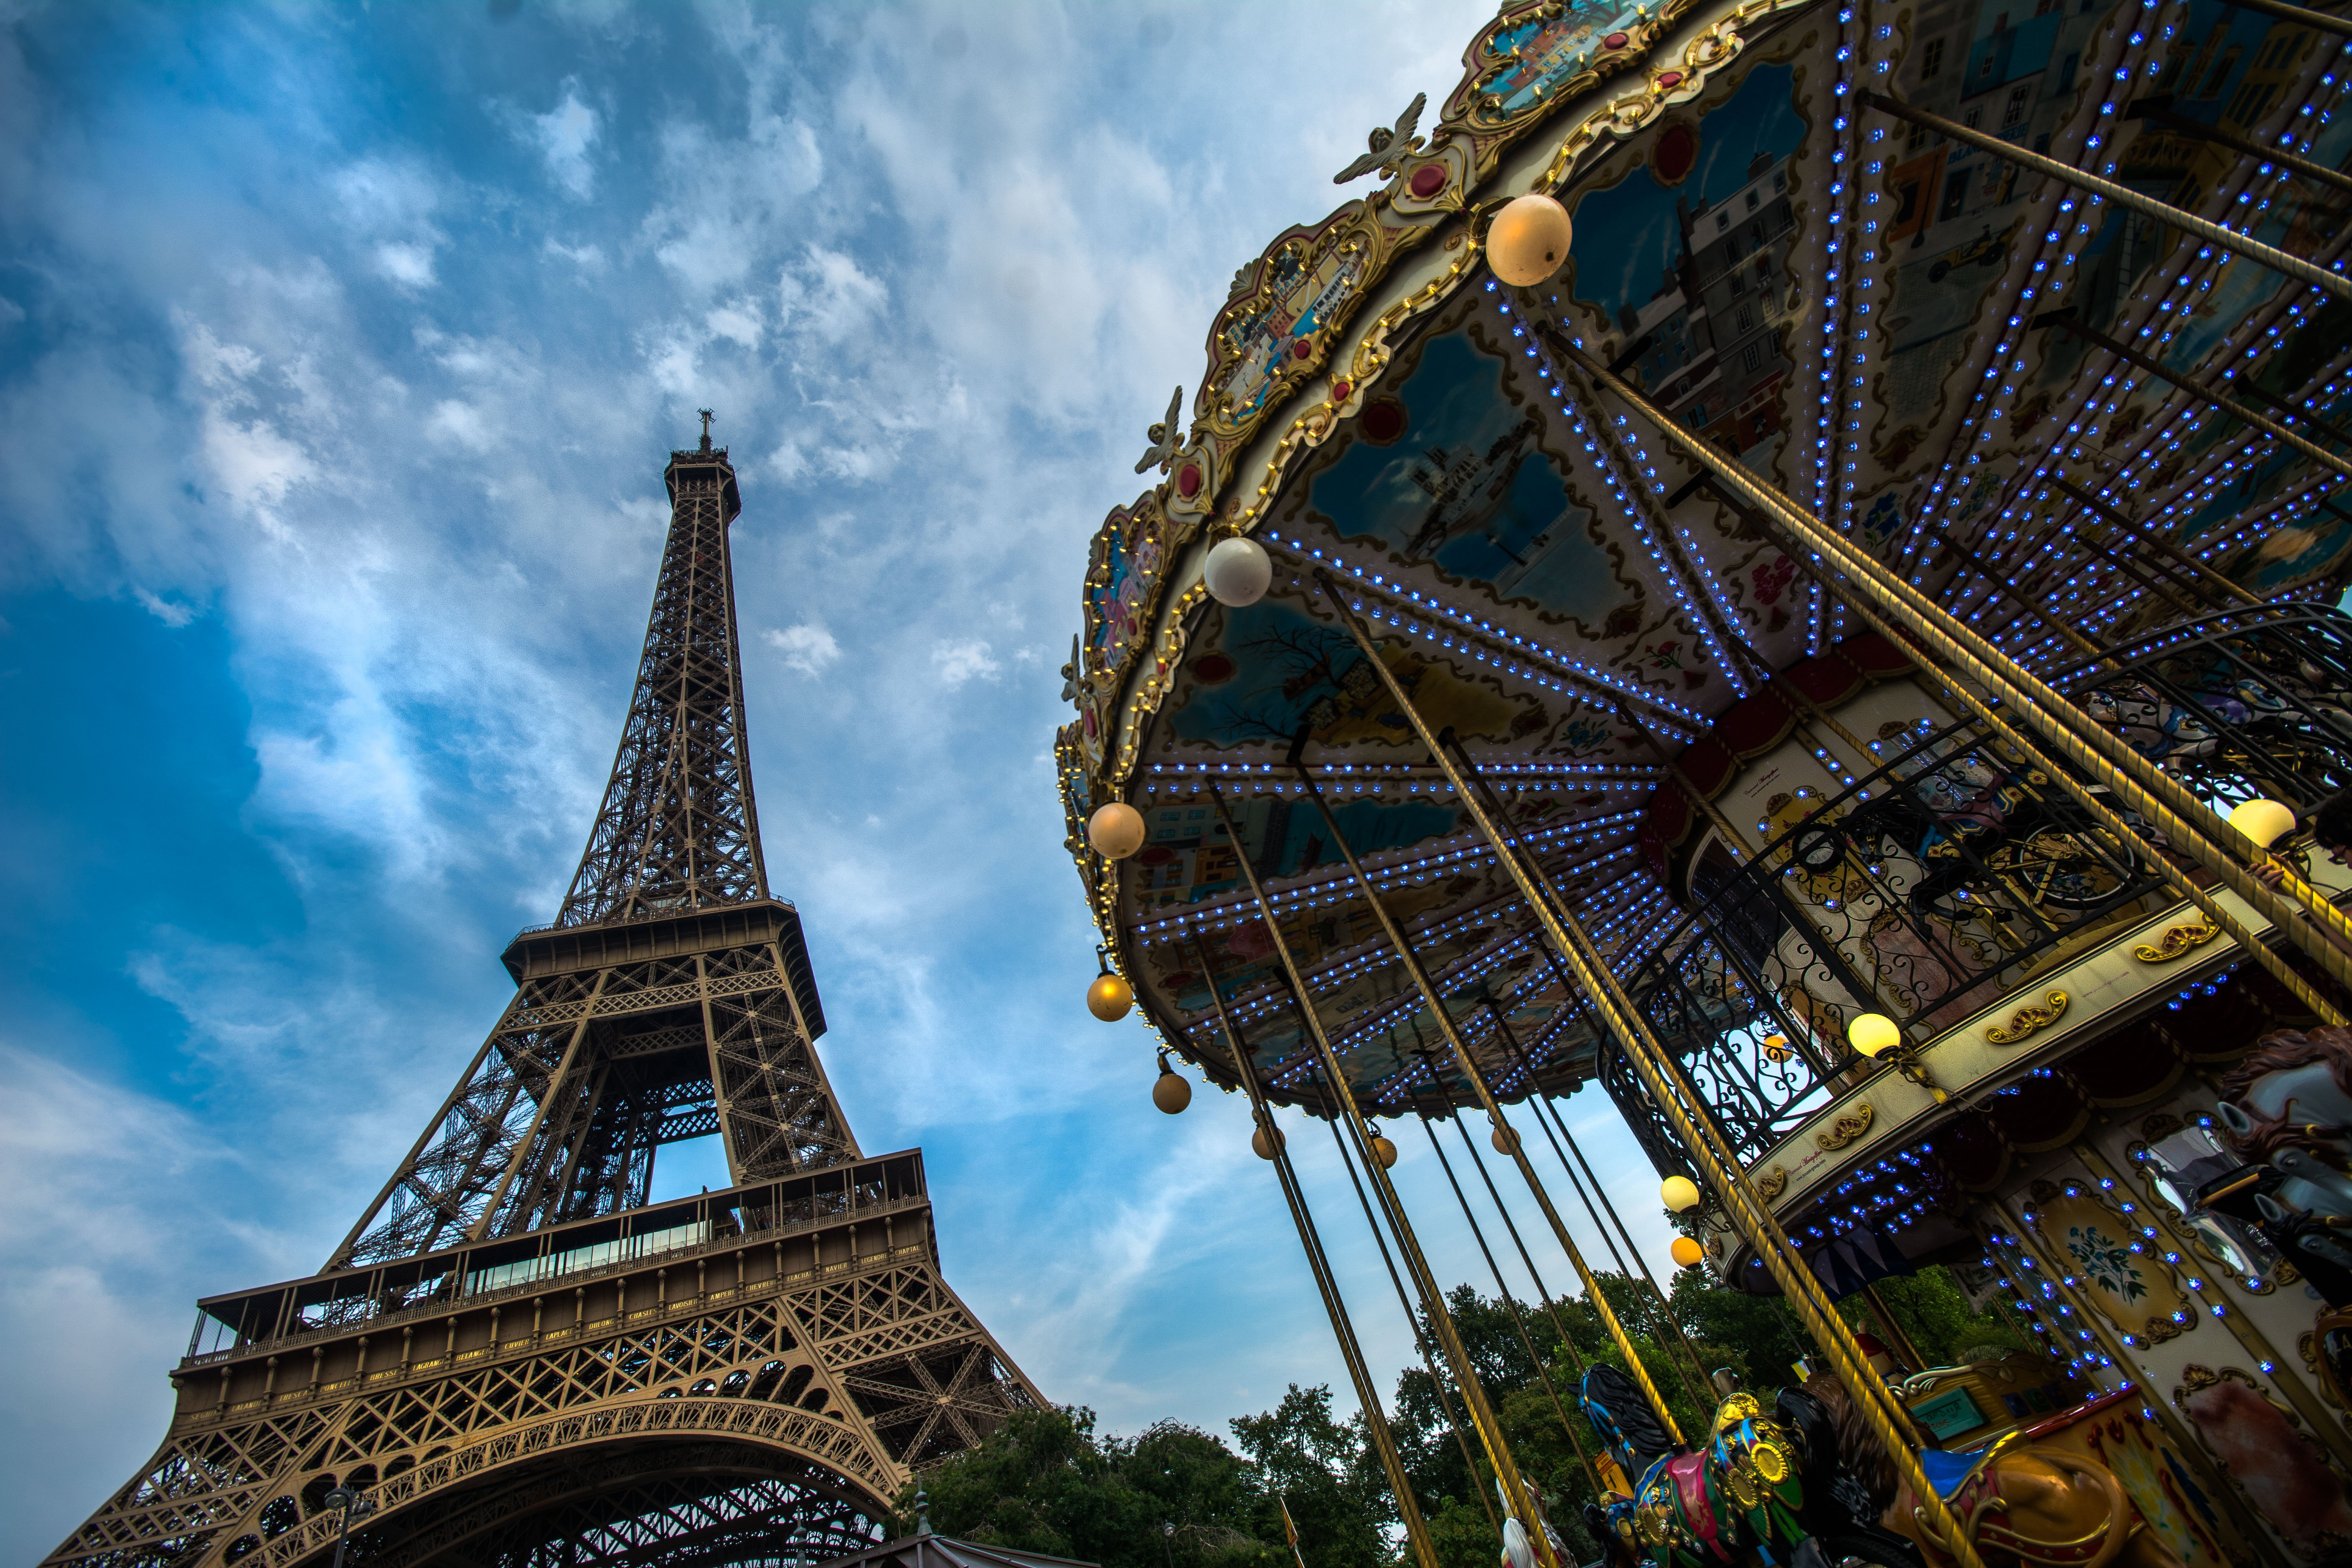 Carousel in front of the Eiffel Tower by Travel Anubhav